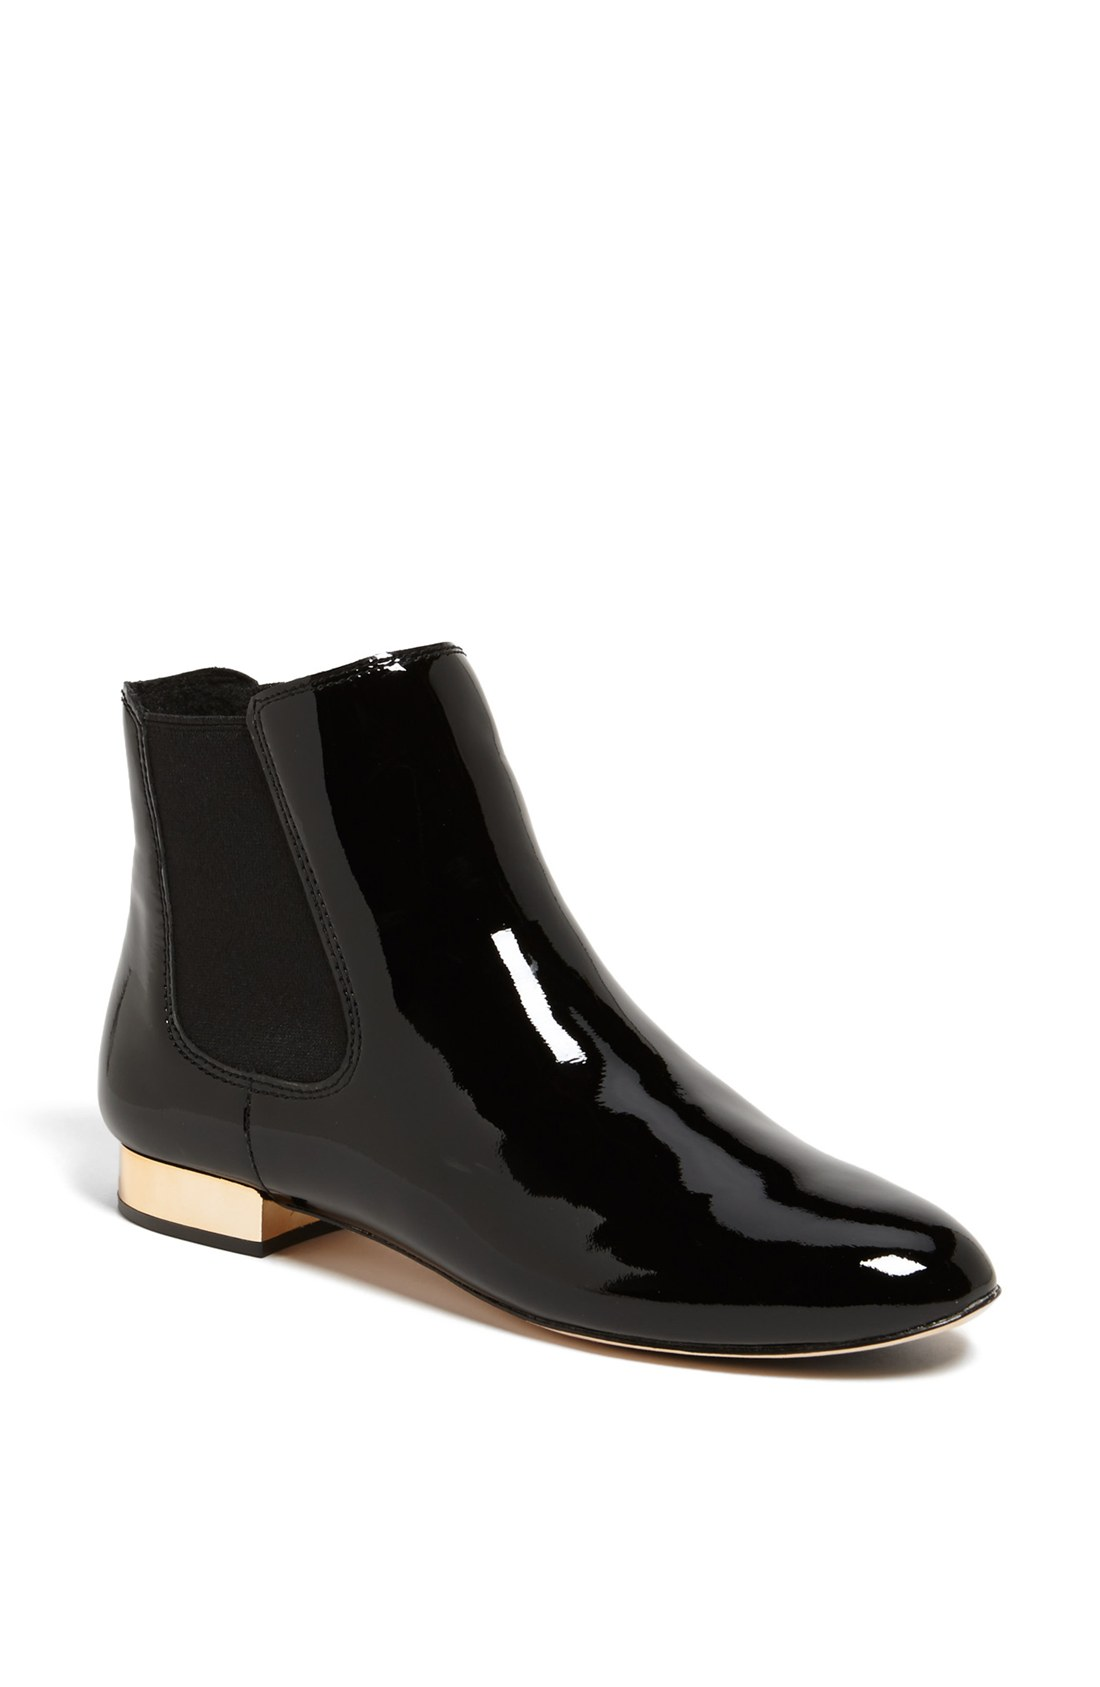 Cool A Pair Of Classic Black Chelsea Boots Never  At $300 Off, These Patentleather,